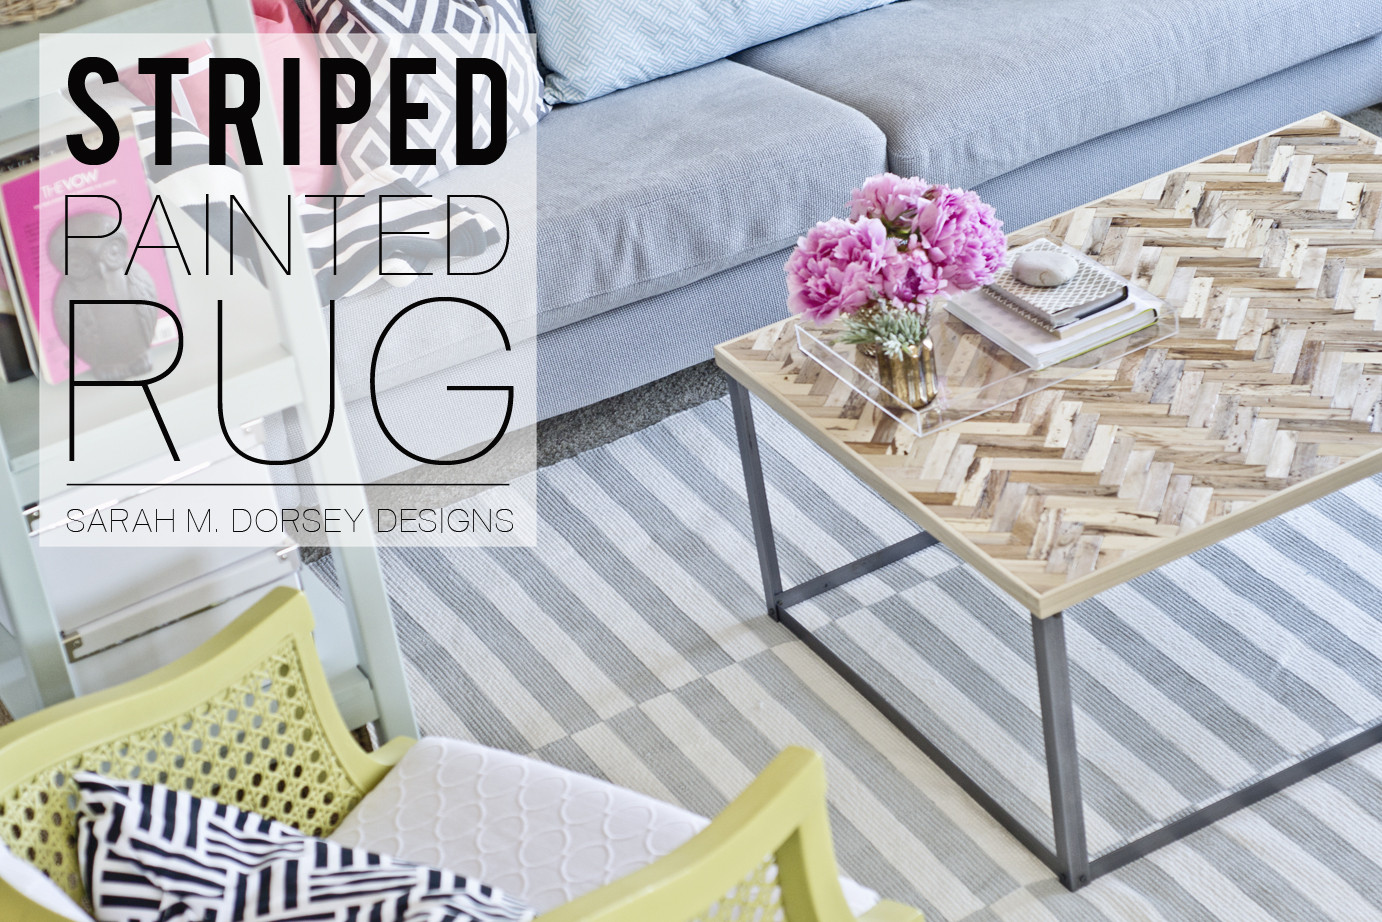 Best ideas about DIY Painted Rug . Save or Pin sarah m dorsey designs DIY Striped Painted Rug in about Now.